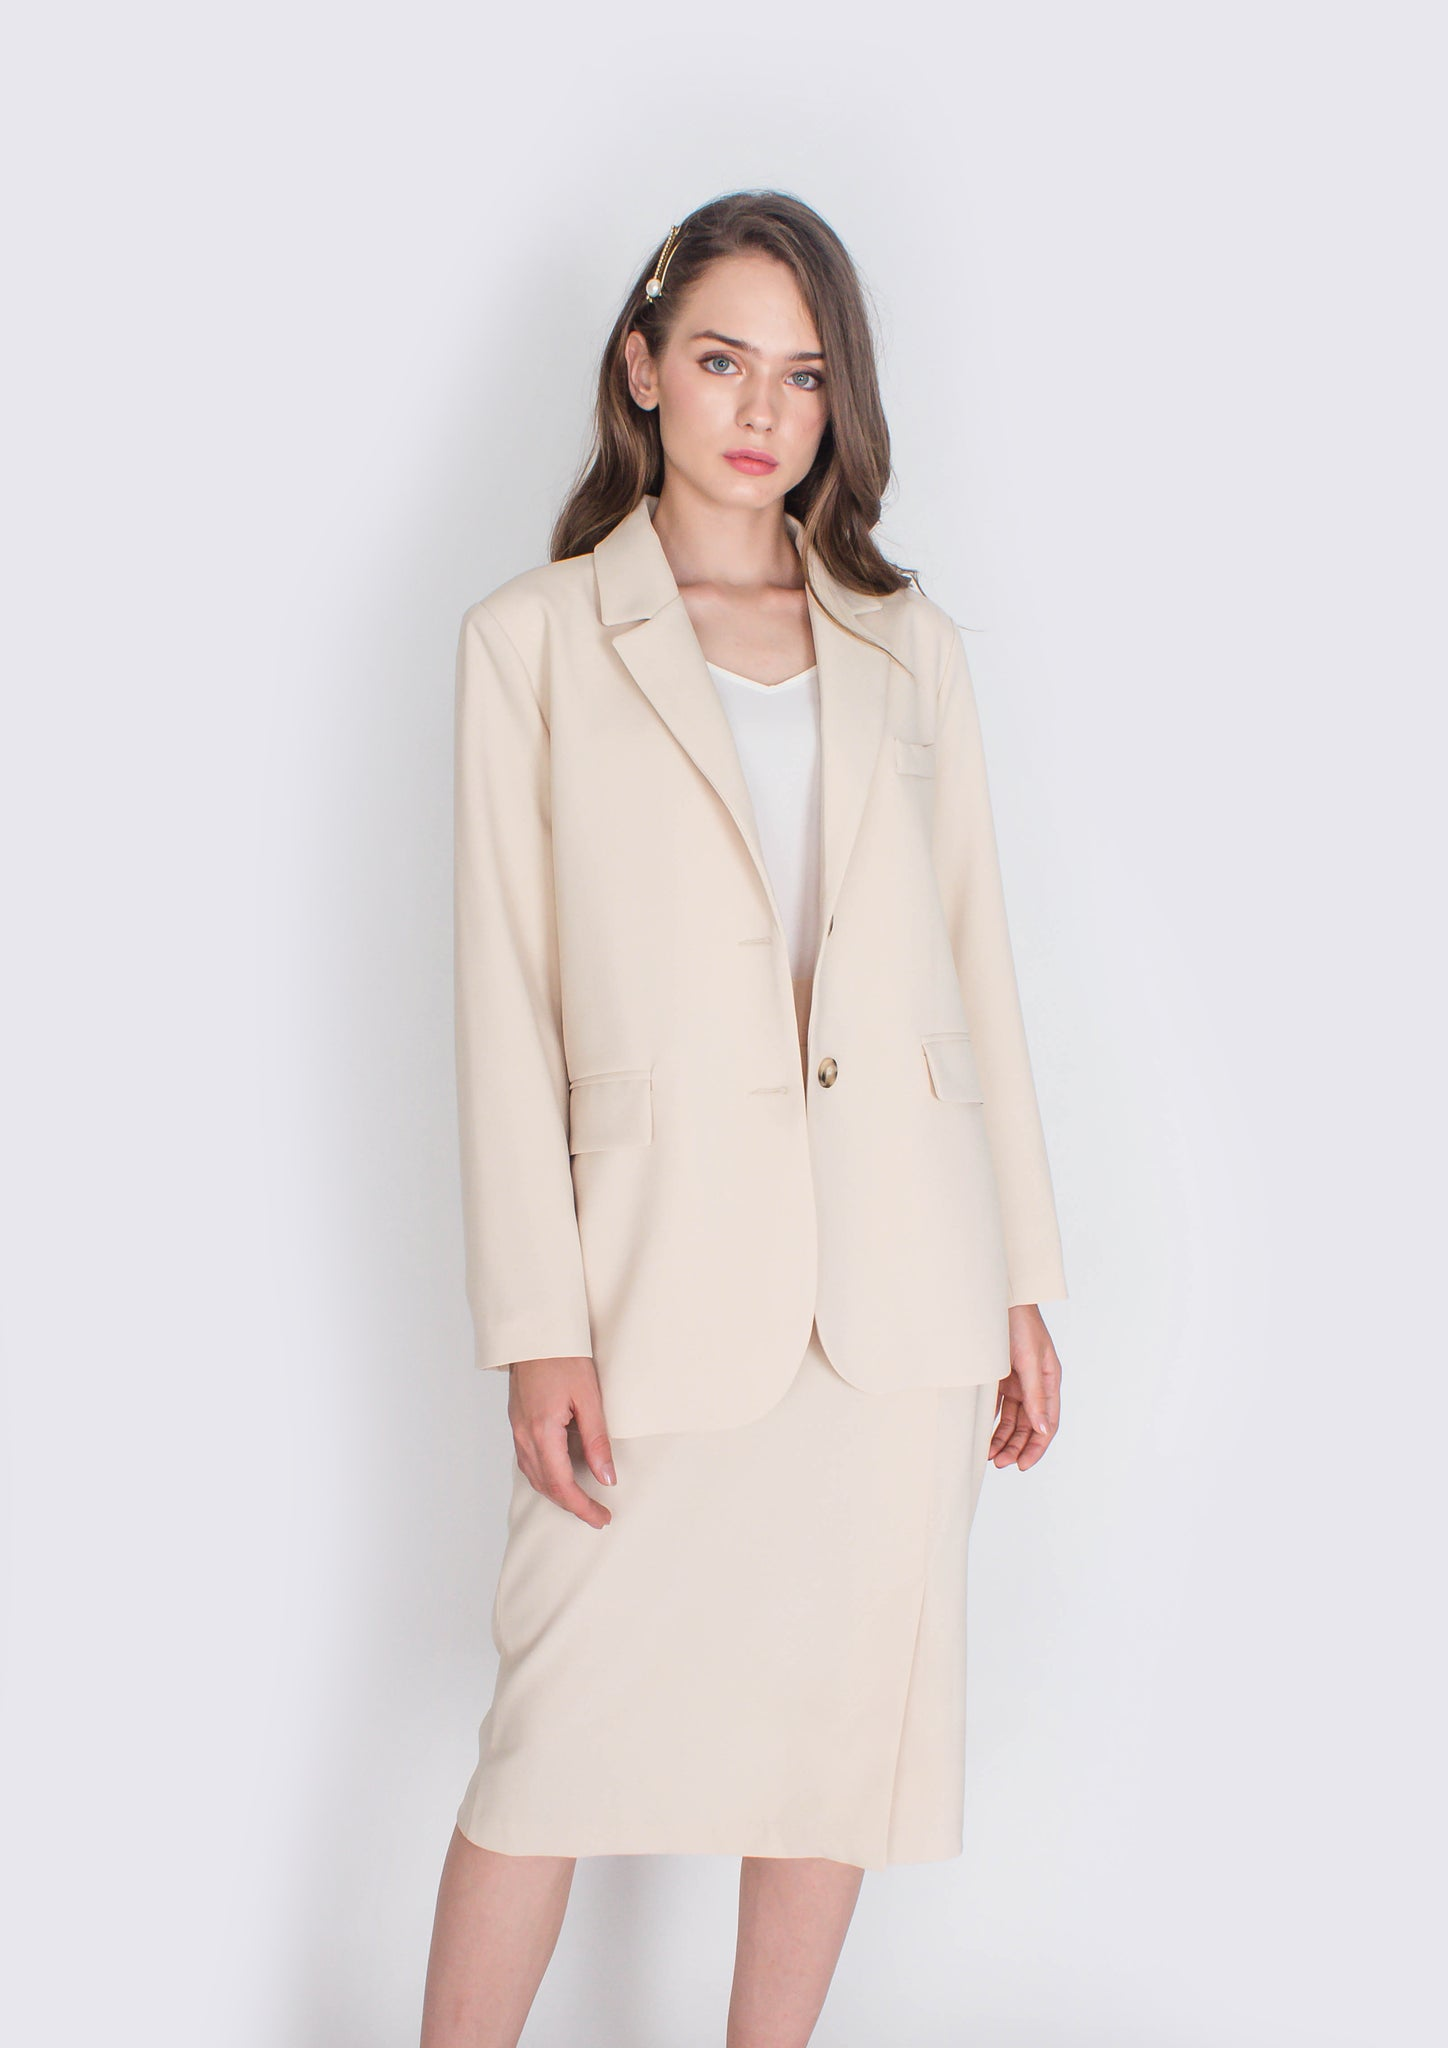 Hepburn Structured Blazer and Skirt Set (Cream)